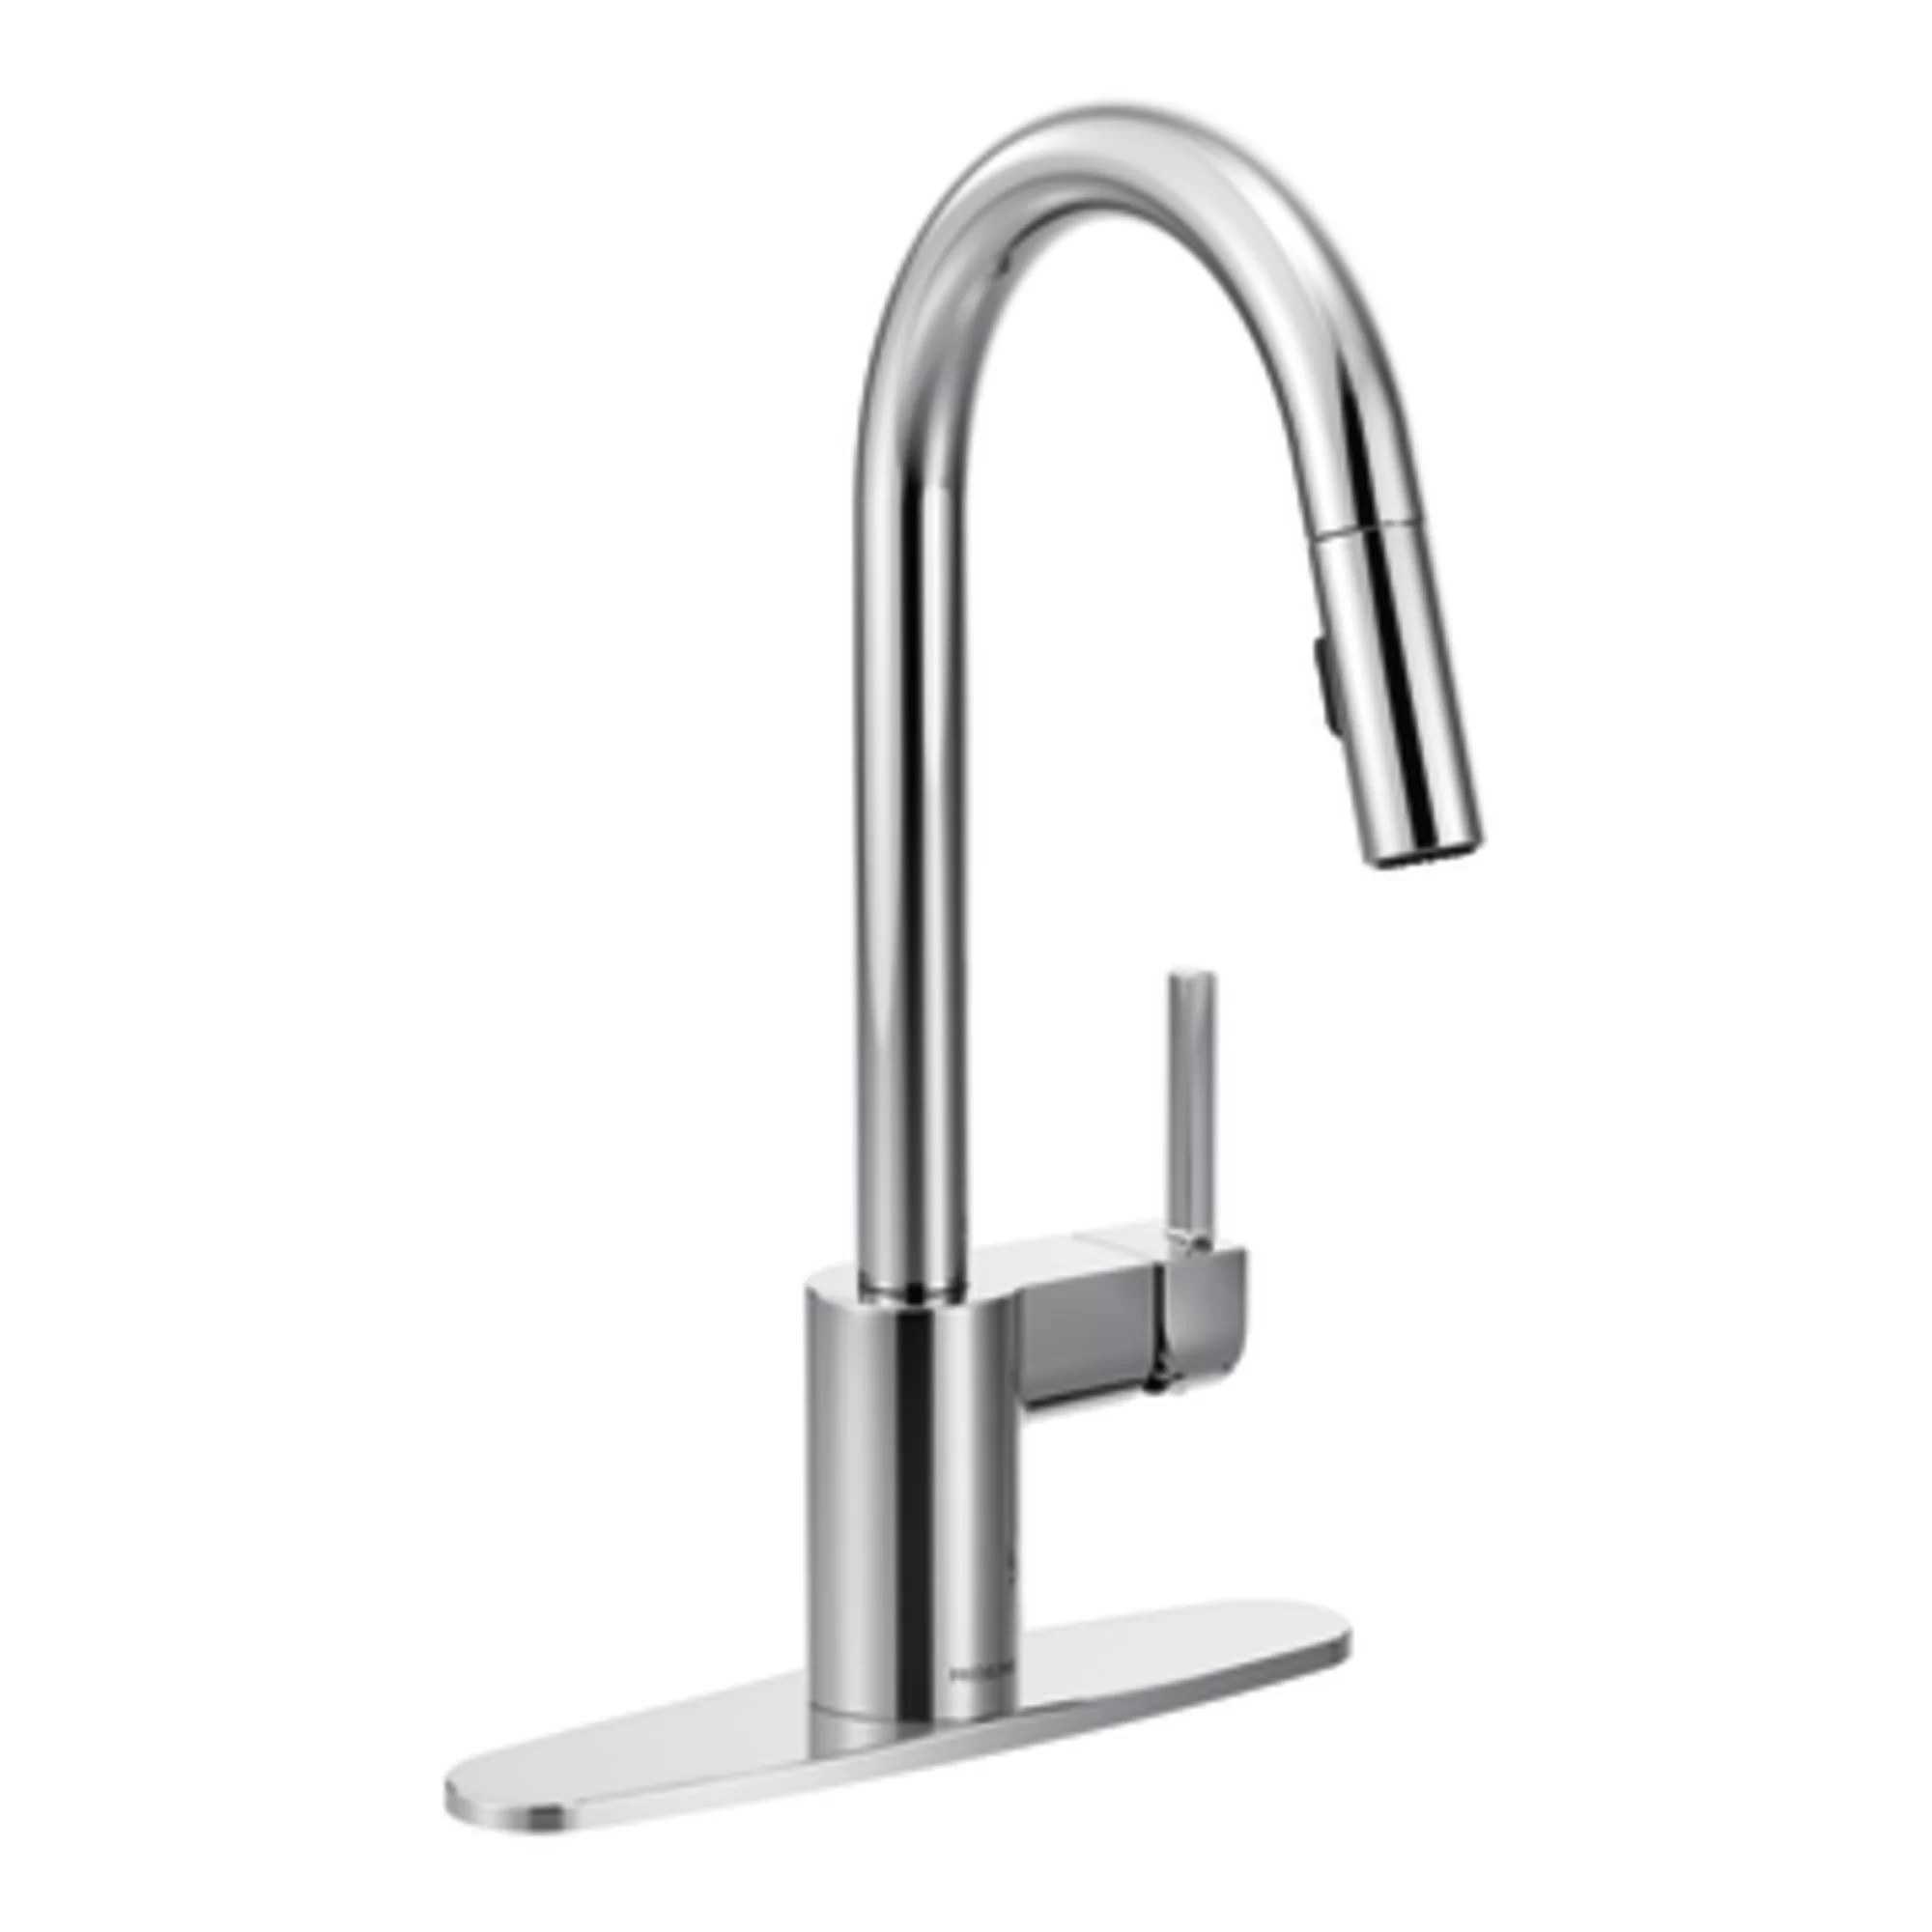 moen hands free kitchen faucet best water filter system align single handle and reviews wayfair